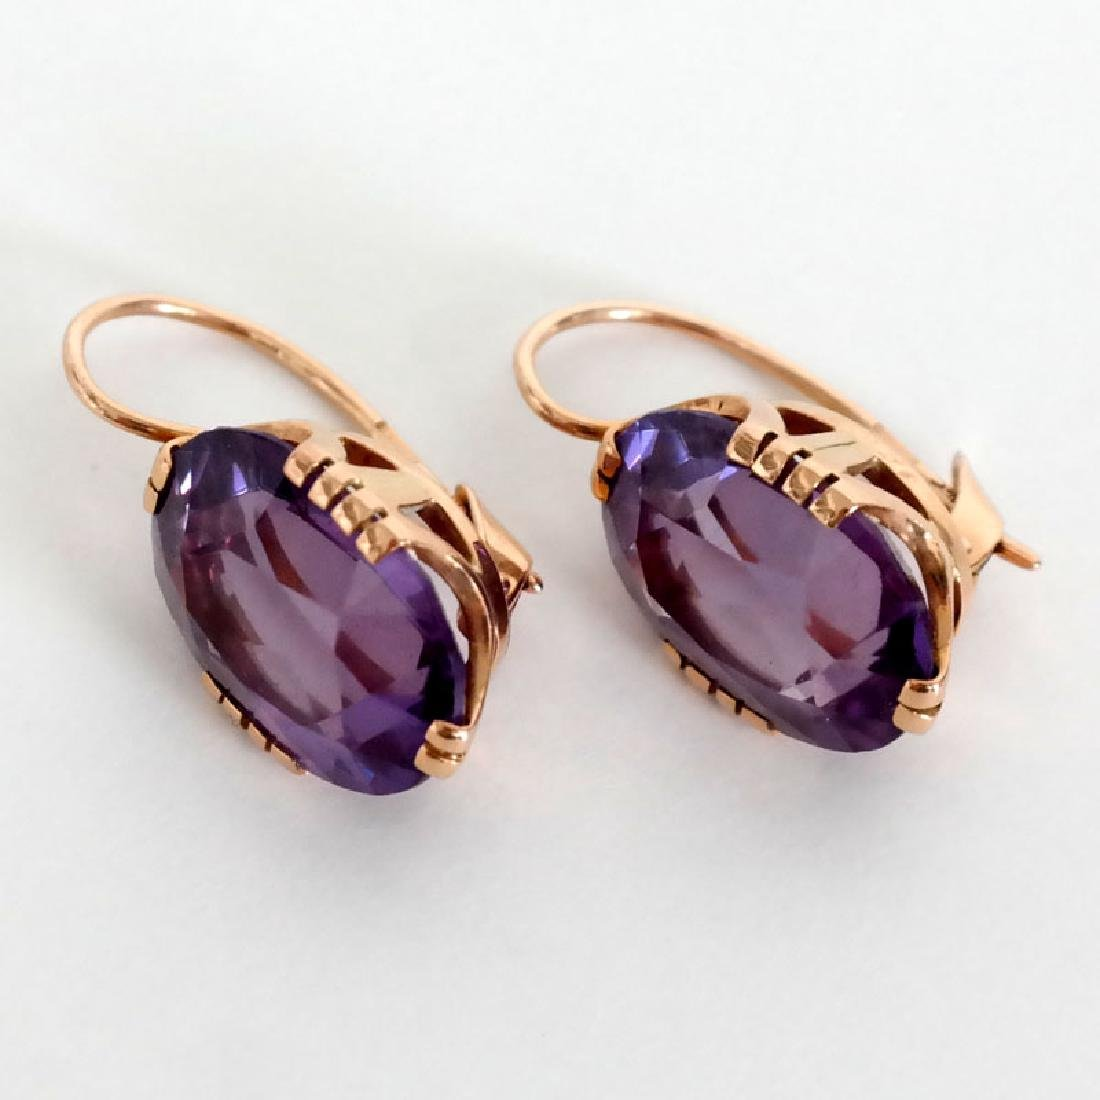 14k pink gold earrings with oval faceted amethysts and